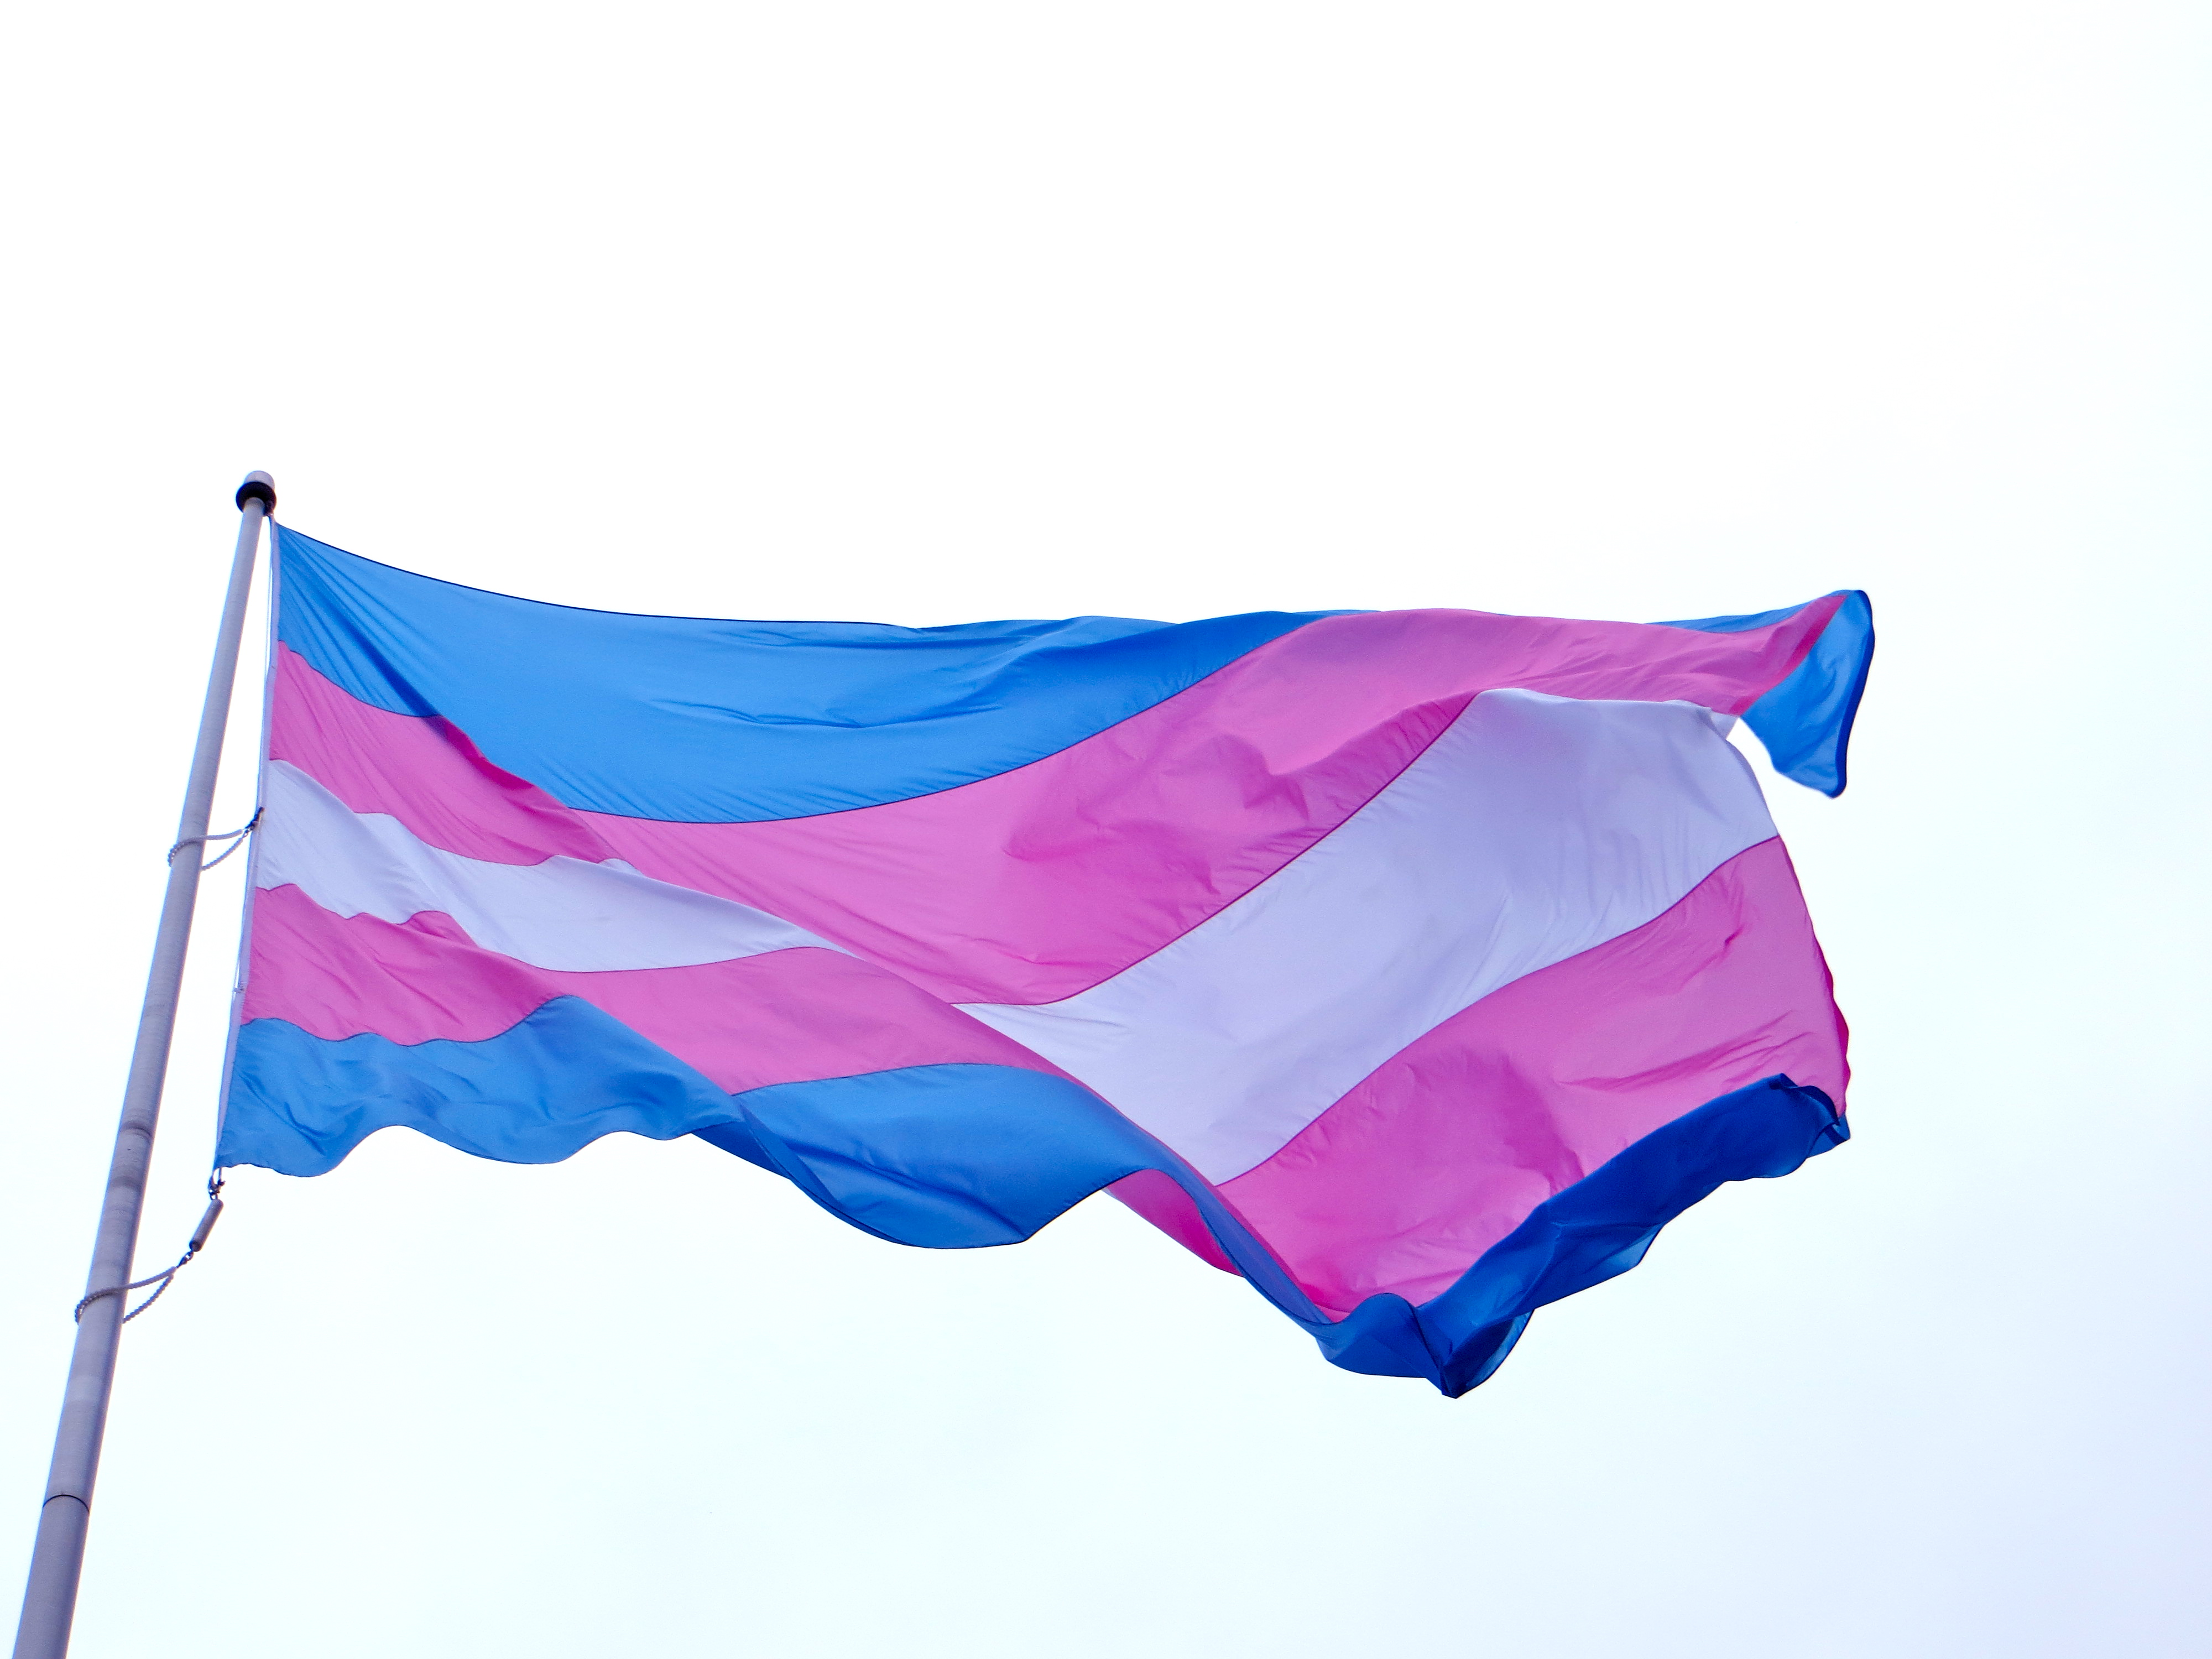 Blue, pink and white transgender flag flying